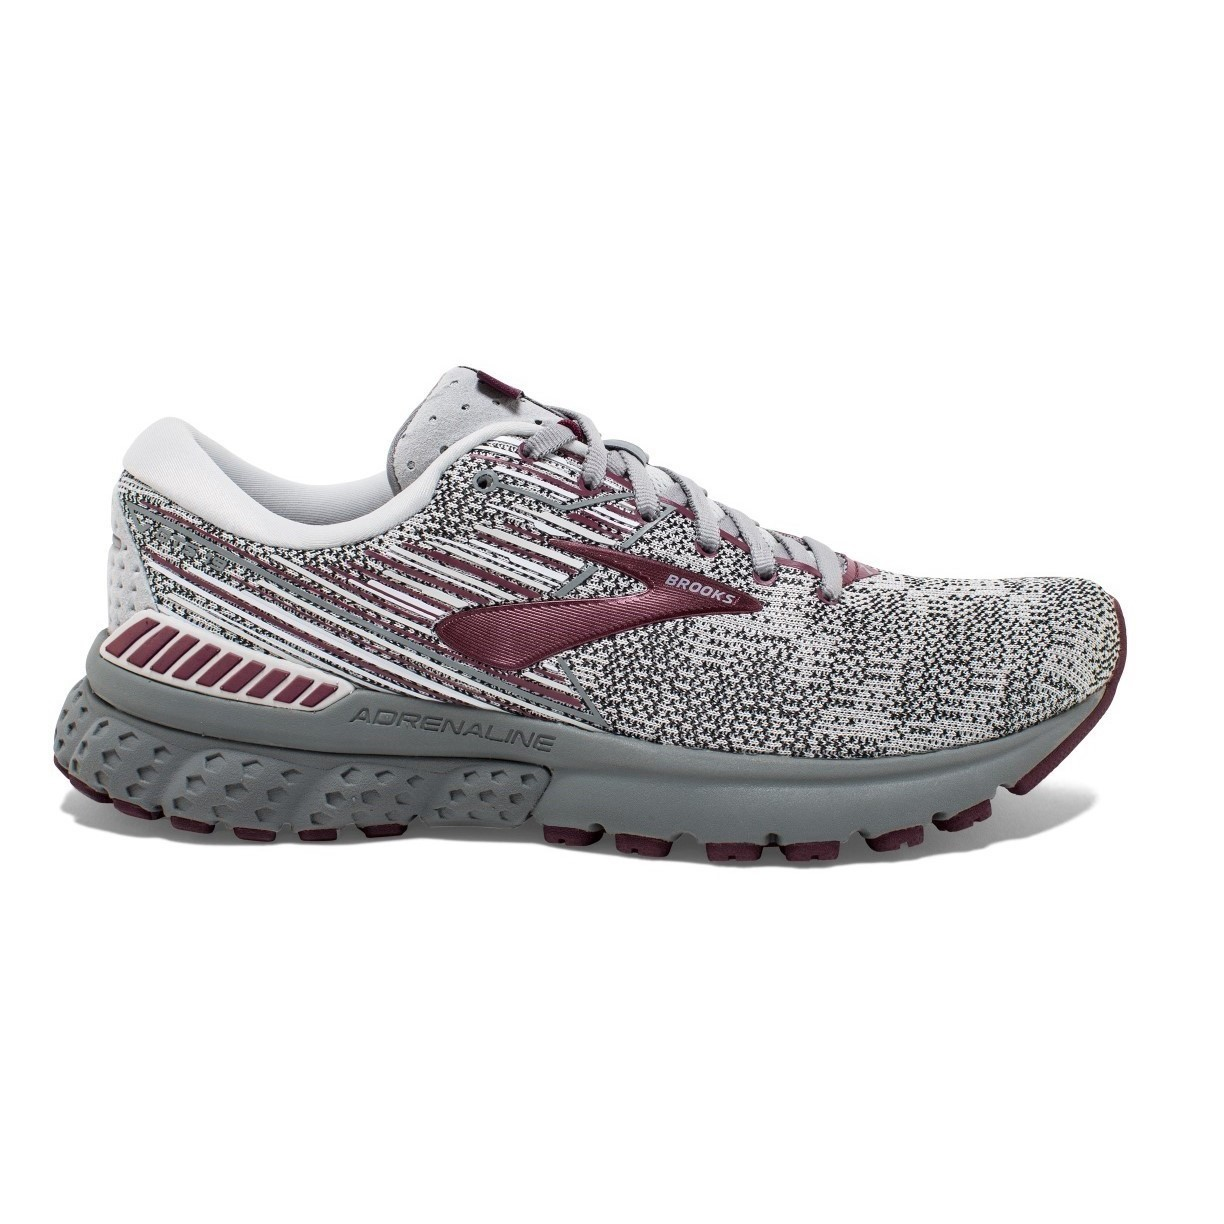 267e262448984 Brooks Adrenaline GTS 19 Knit - Womens Running Shoes - Grey White ...